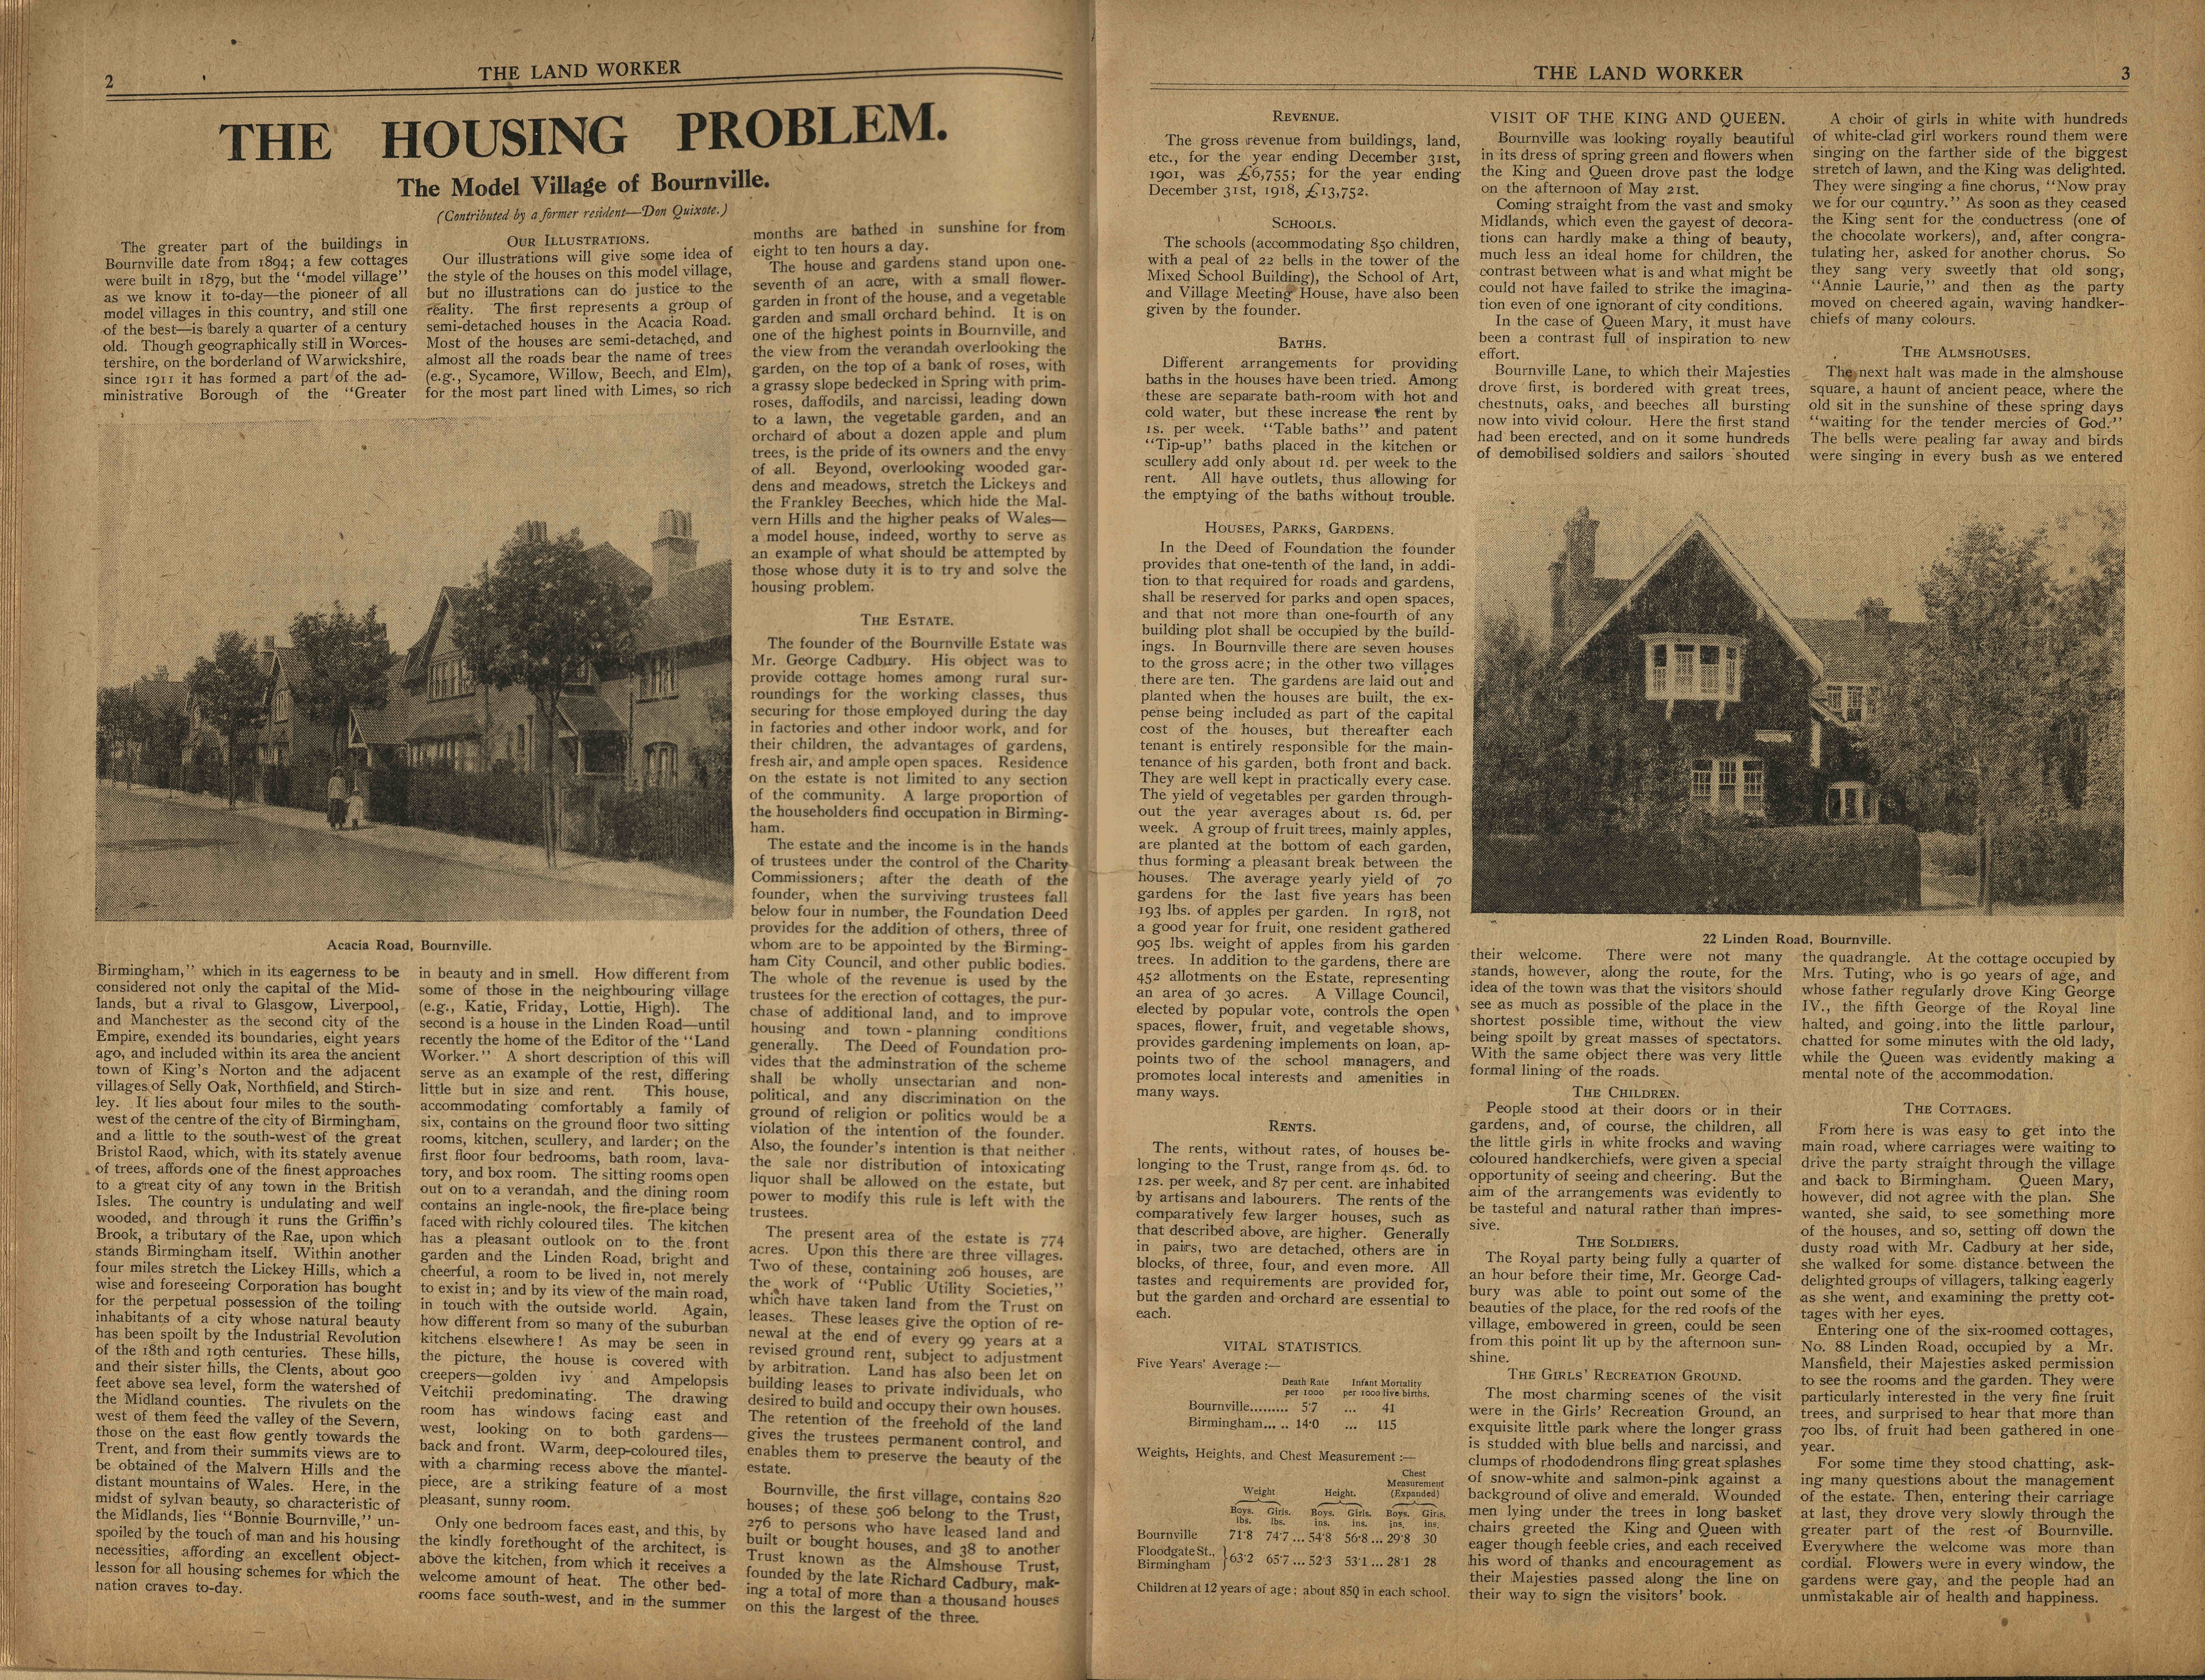 1919: 'The housing problem: The model village of Bournville'